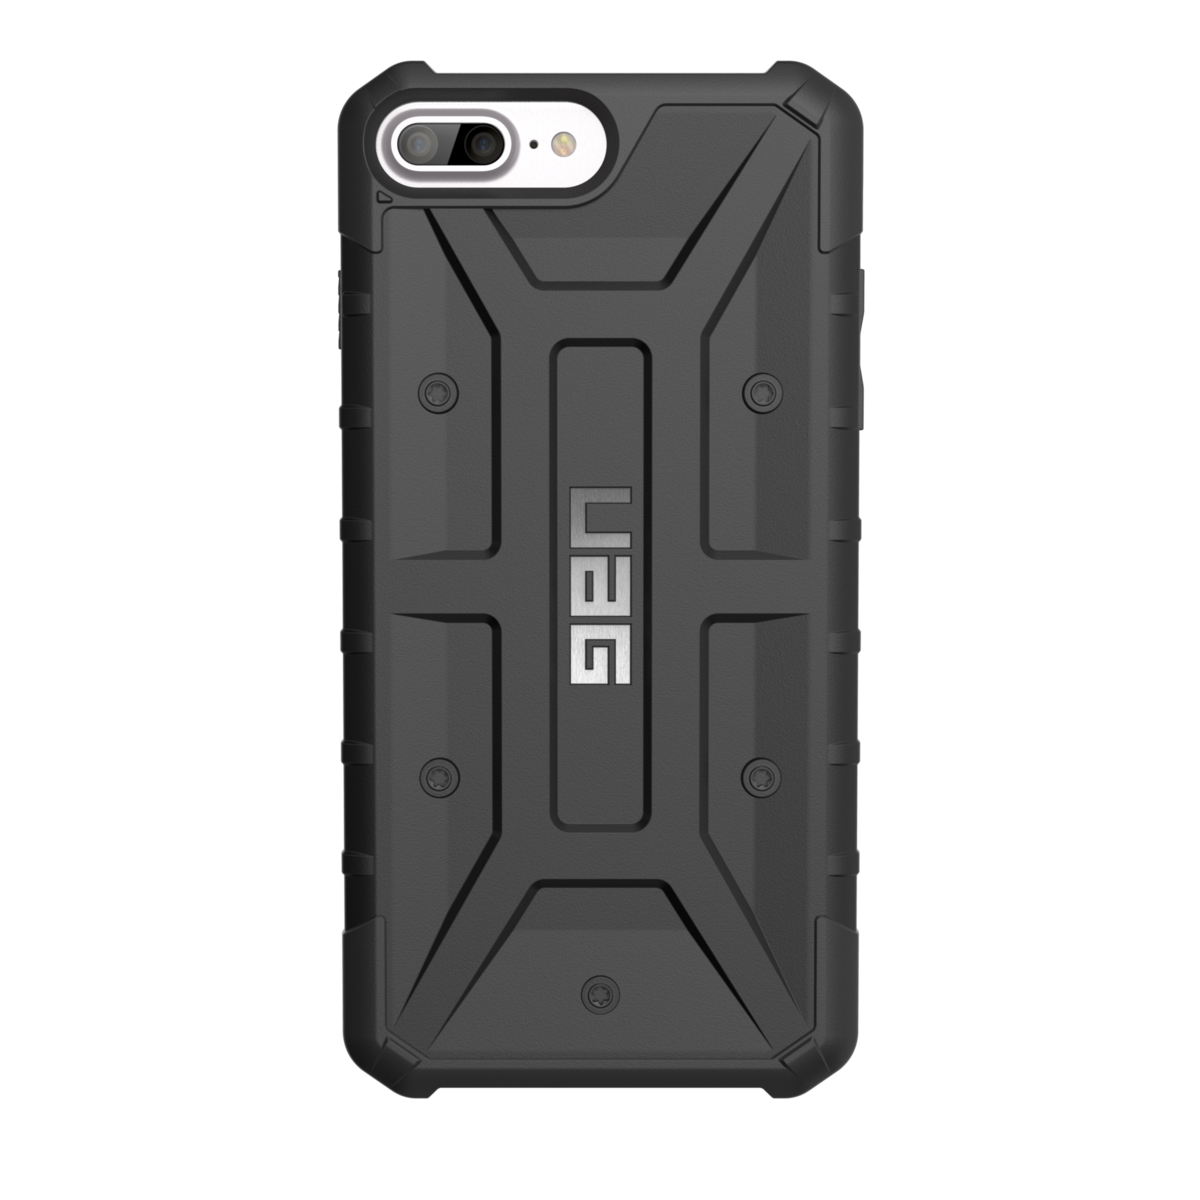 "UAG Original Protective Cover Case Pathfinder Series για Apple iPhone 7 & 8 Plus (5.5"") & iPhone 6s Plus (5.5"") Black"